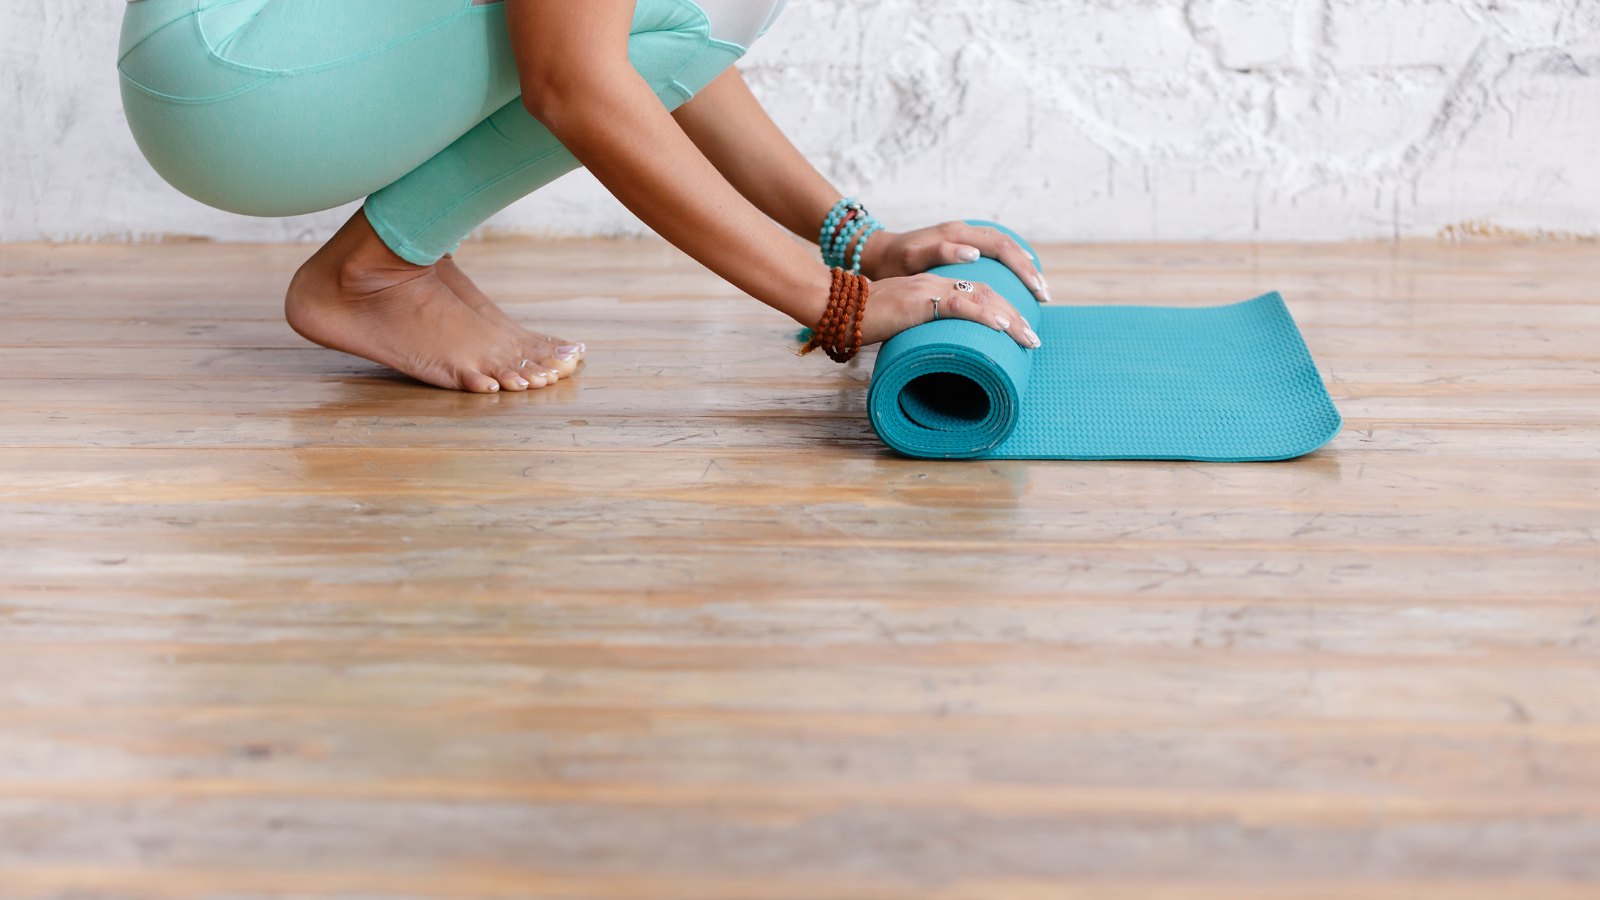 Close-up of young woman folding blue yoga or fitness mat after working out at home in living room